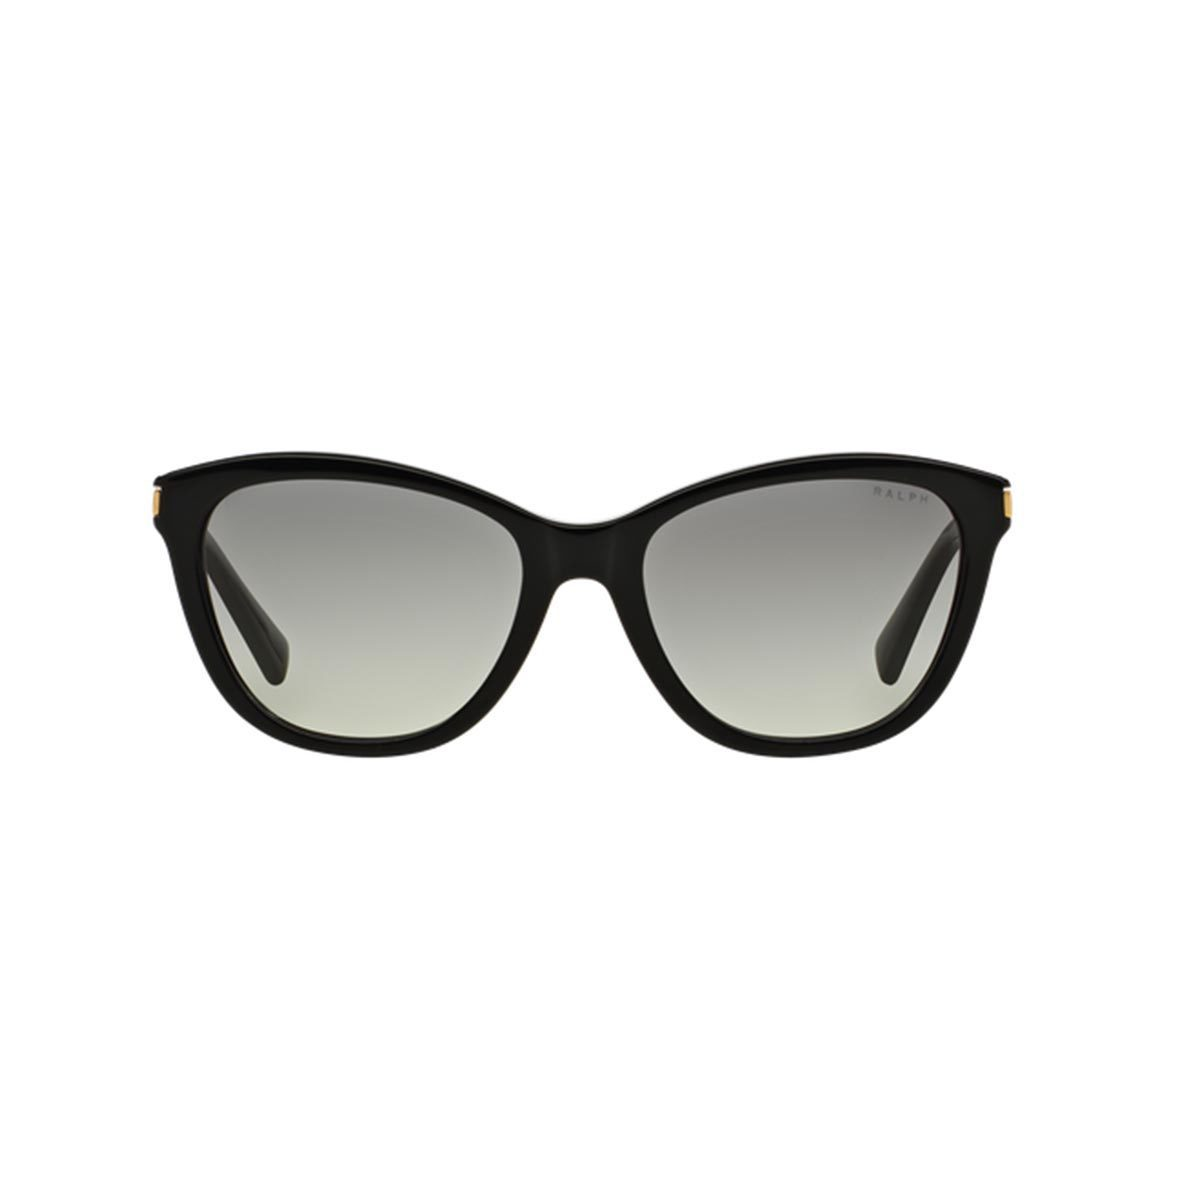 988c2b7abf Shop Ralph by Ralph Lauren Women s RA5201 Black Plastic Cat Eye Sunglasses  - Free Shipping Today - Overstock - 10857414